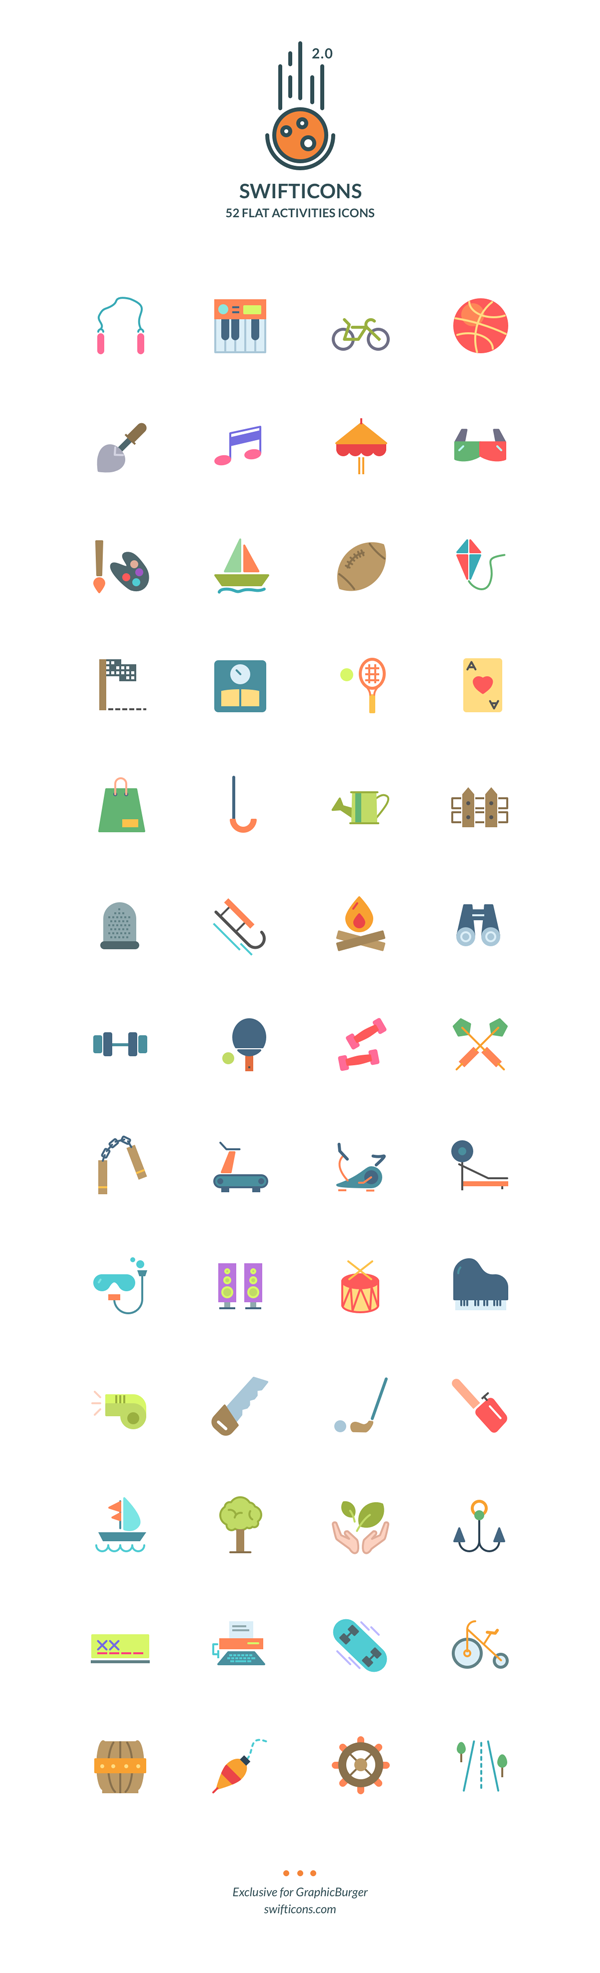 20-flat-activities-icons